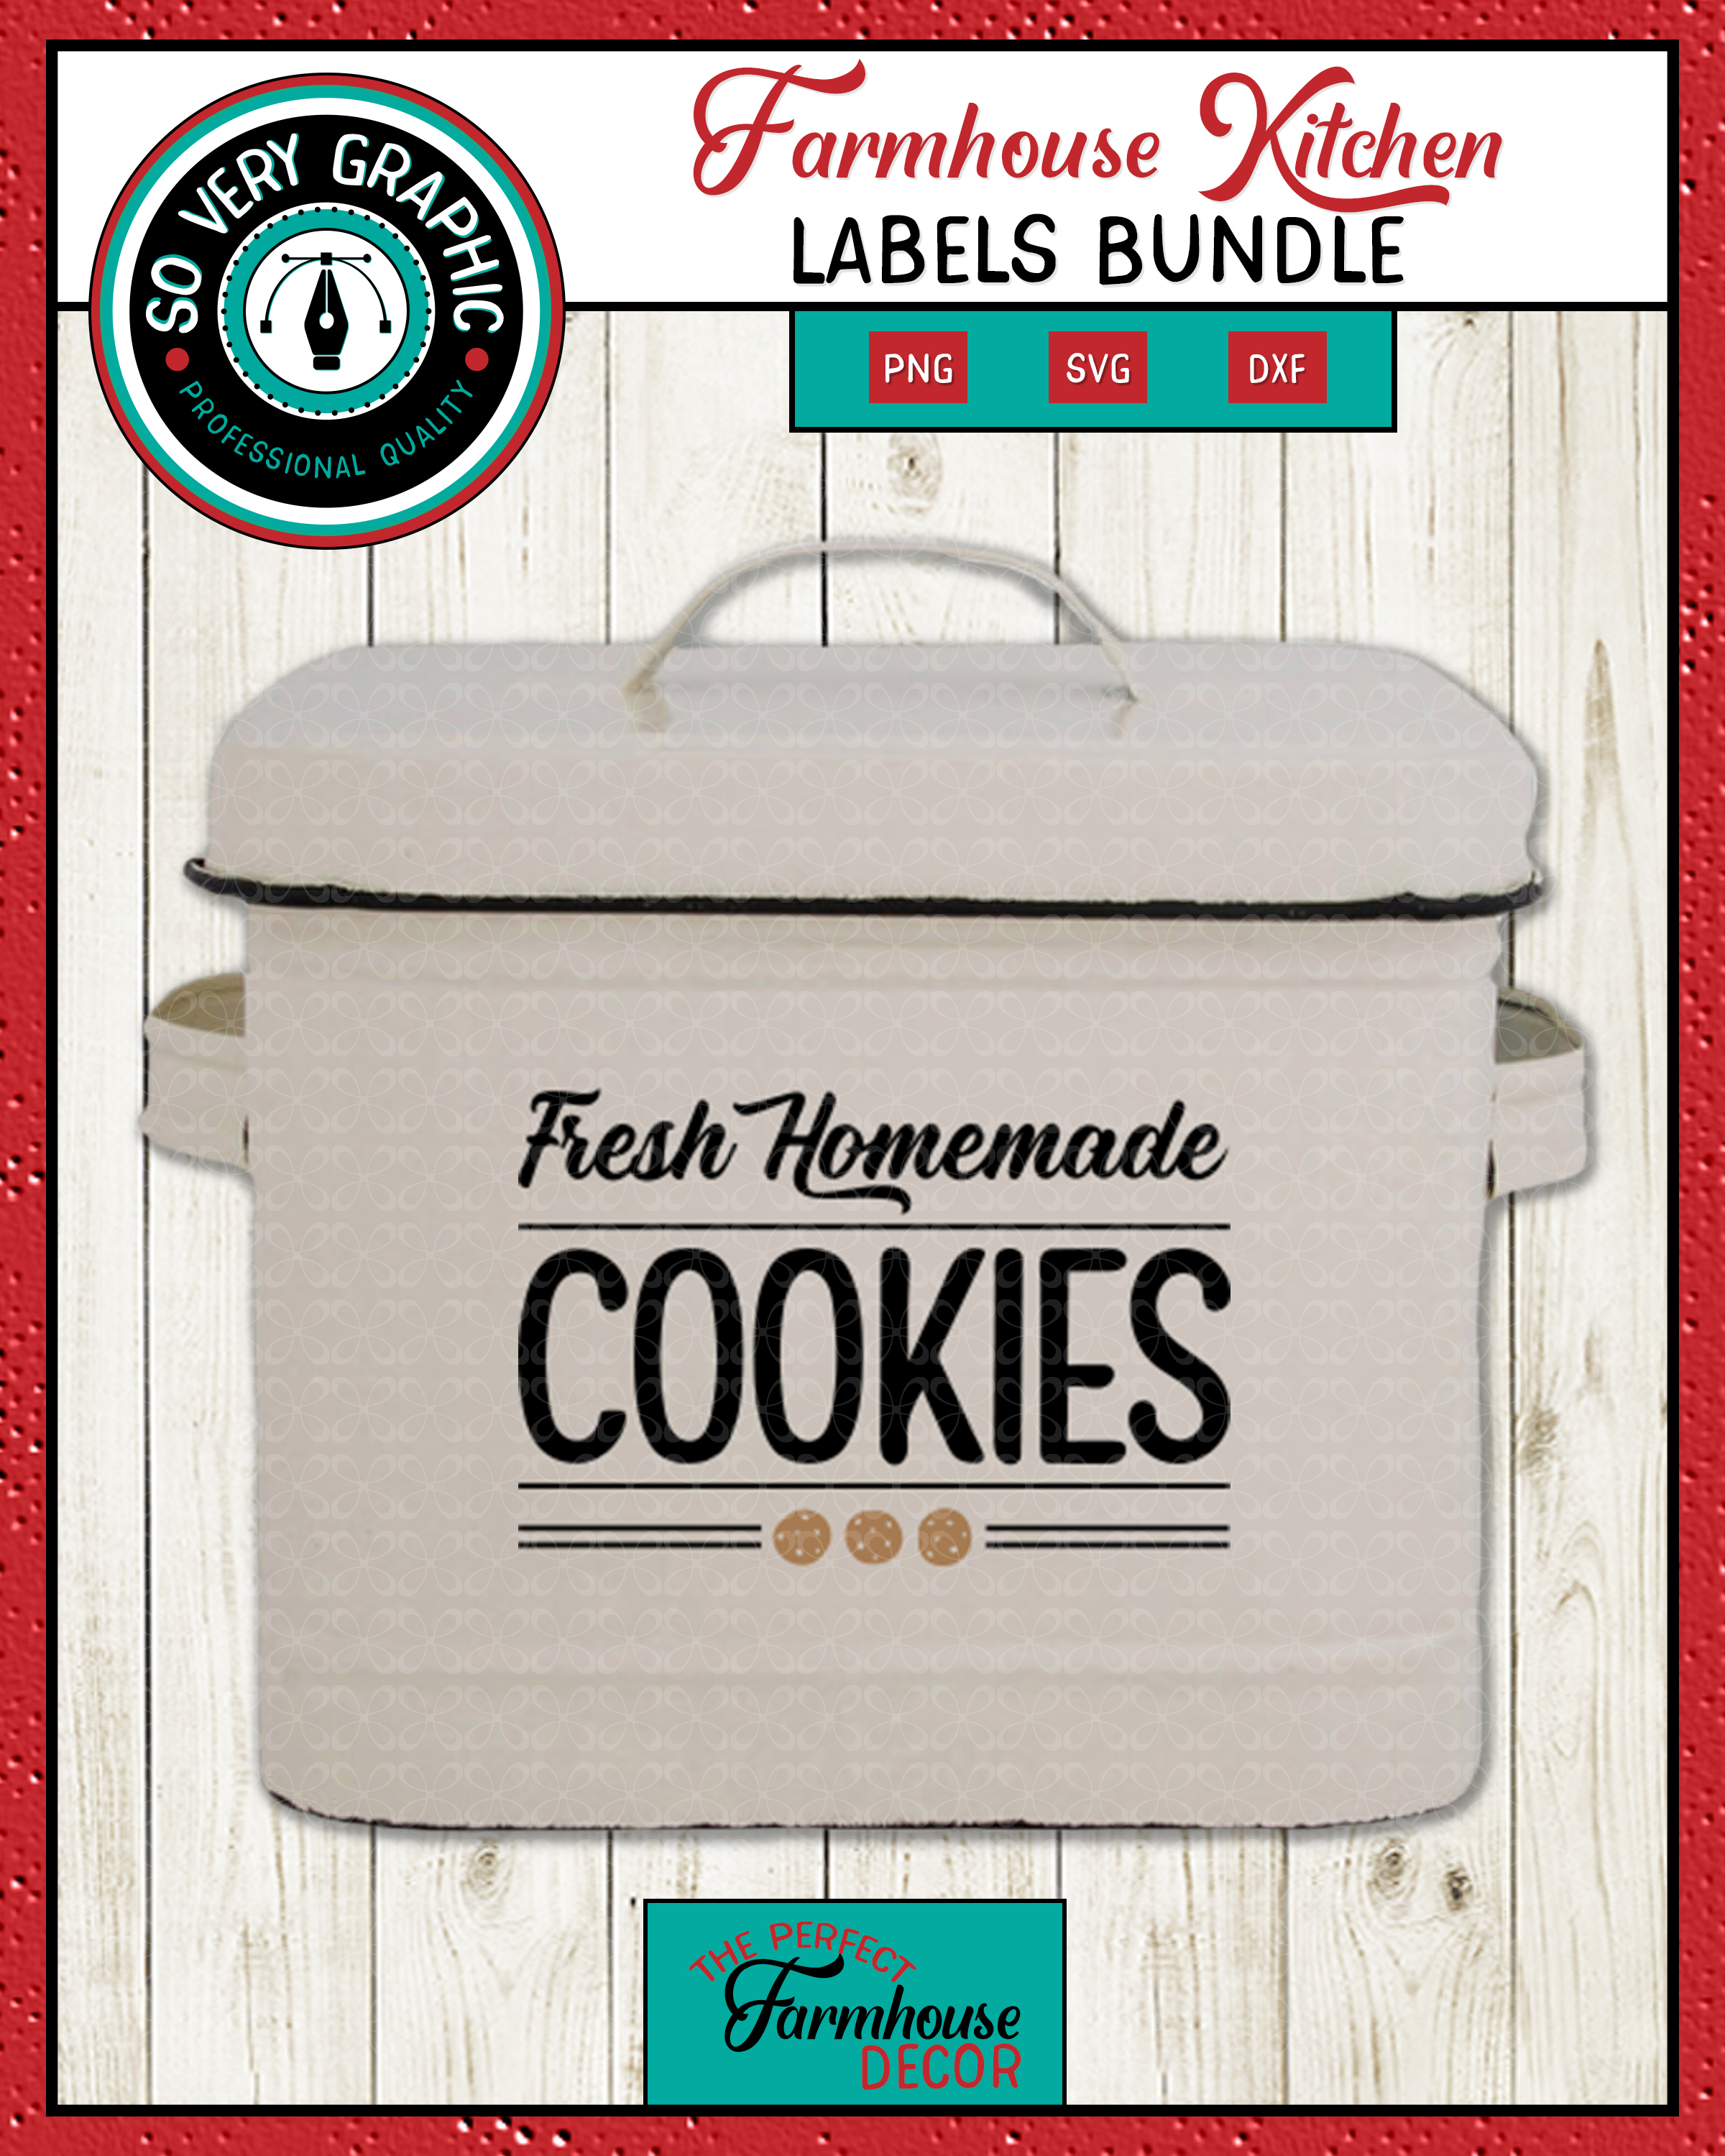 Farmhouse Kitchen Labels Bundle | Canister Pantry Decals SVG example image 2